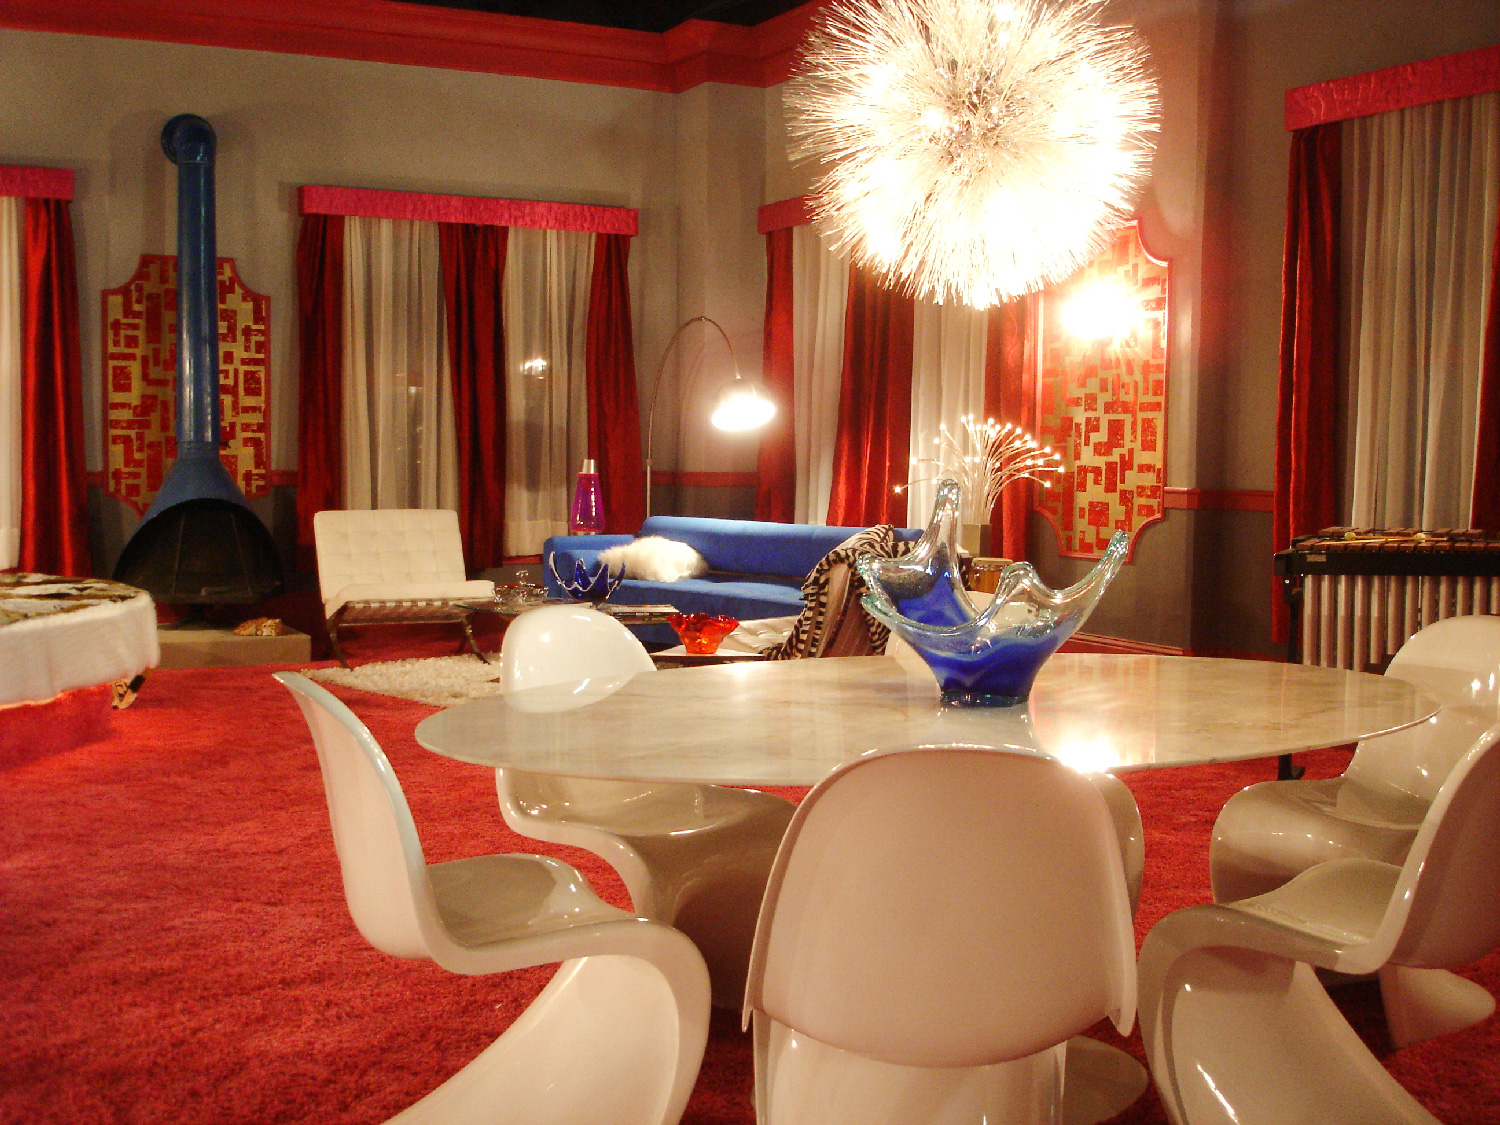 """Merv's (Jason Earles) Ratpack style swinging bachelor pad penthouse stage set on the top floor of the """"Merc"""" hotel."""